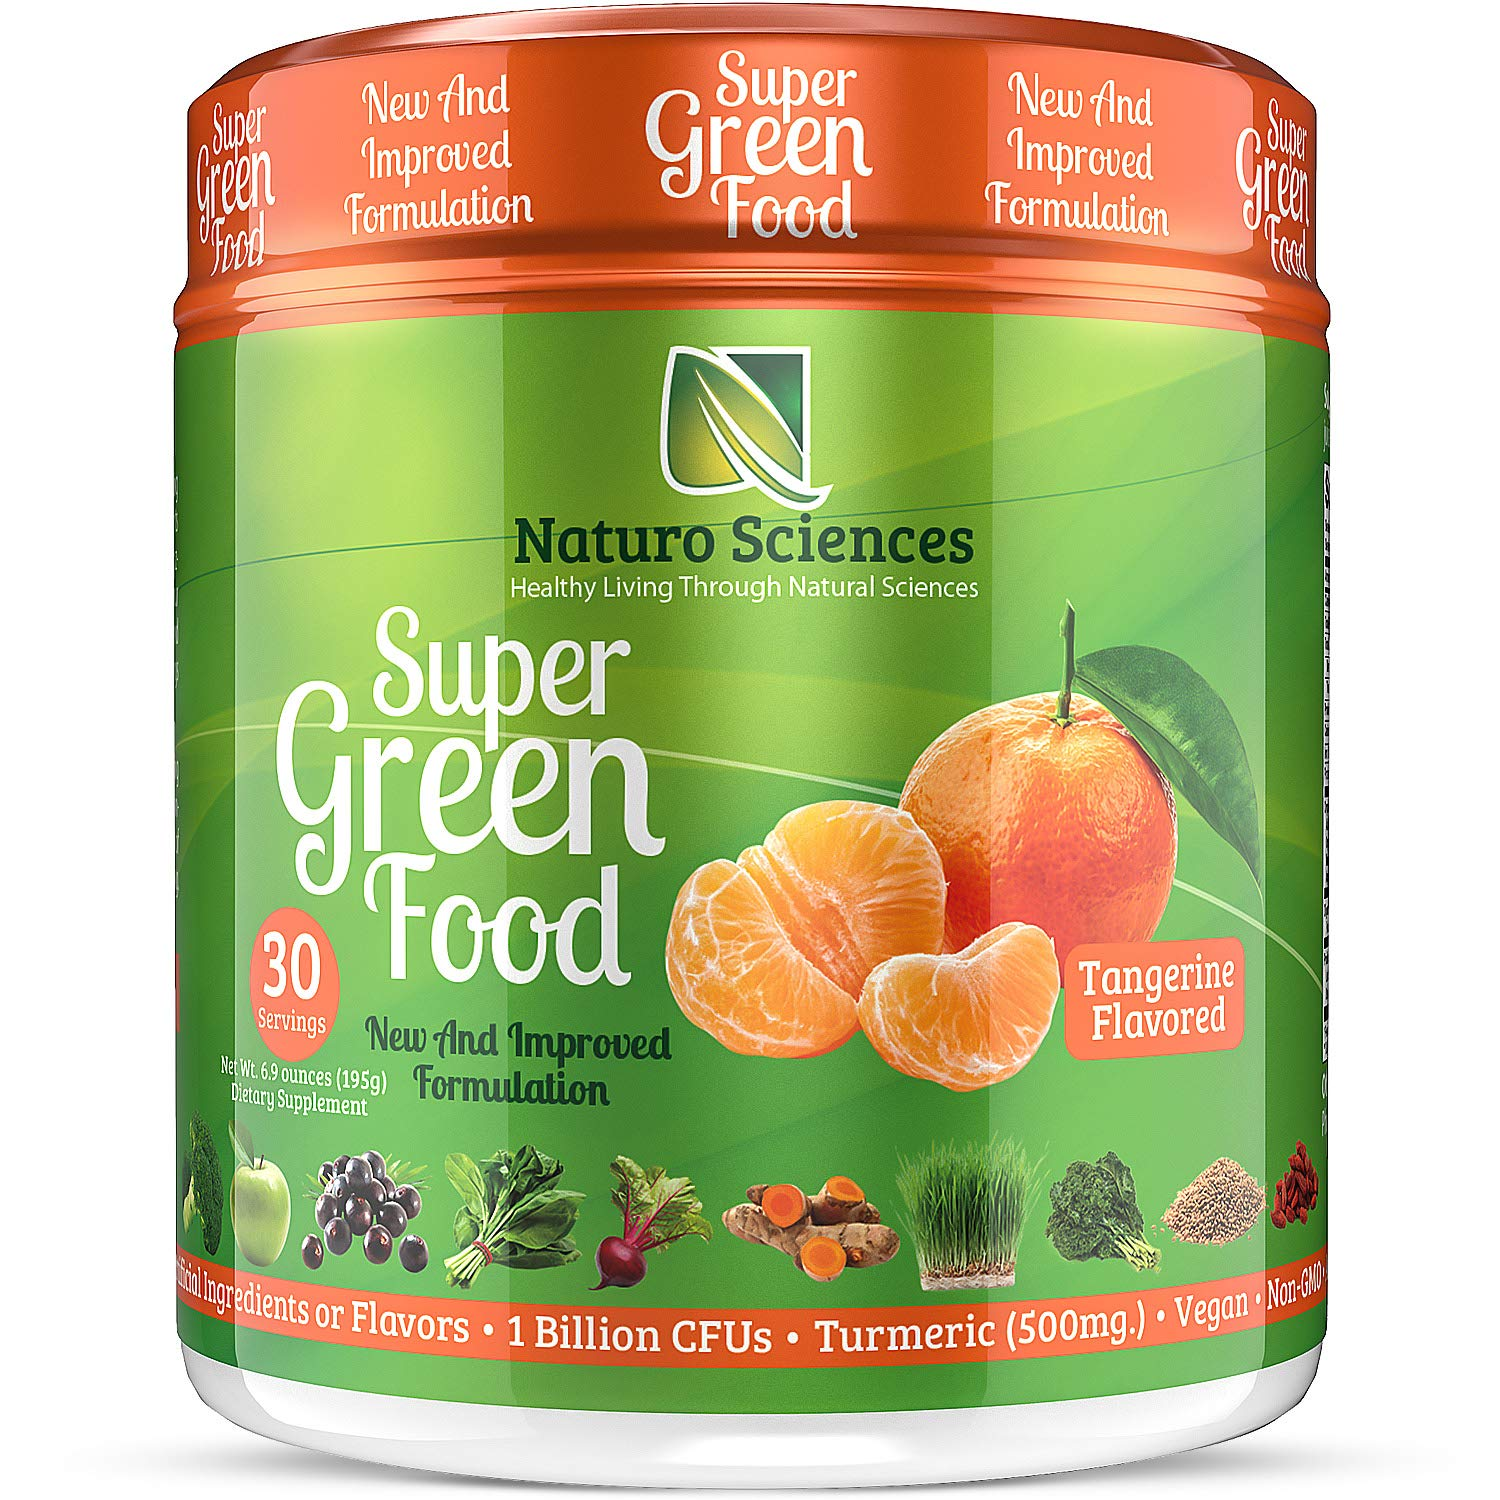 100% Natural Greens Powder, Over 10 Hard to Get Superfoods, Greens Supplement Powder 1 Month's Supply, Green Organic Blend with 1 Billion CFU Probiotics and 500mg Turmeric, Tangerine Flavor, 30 Svgs.